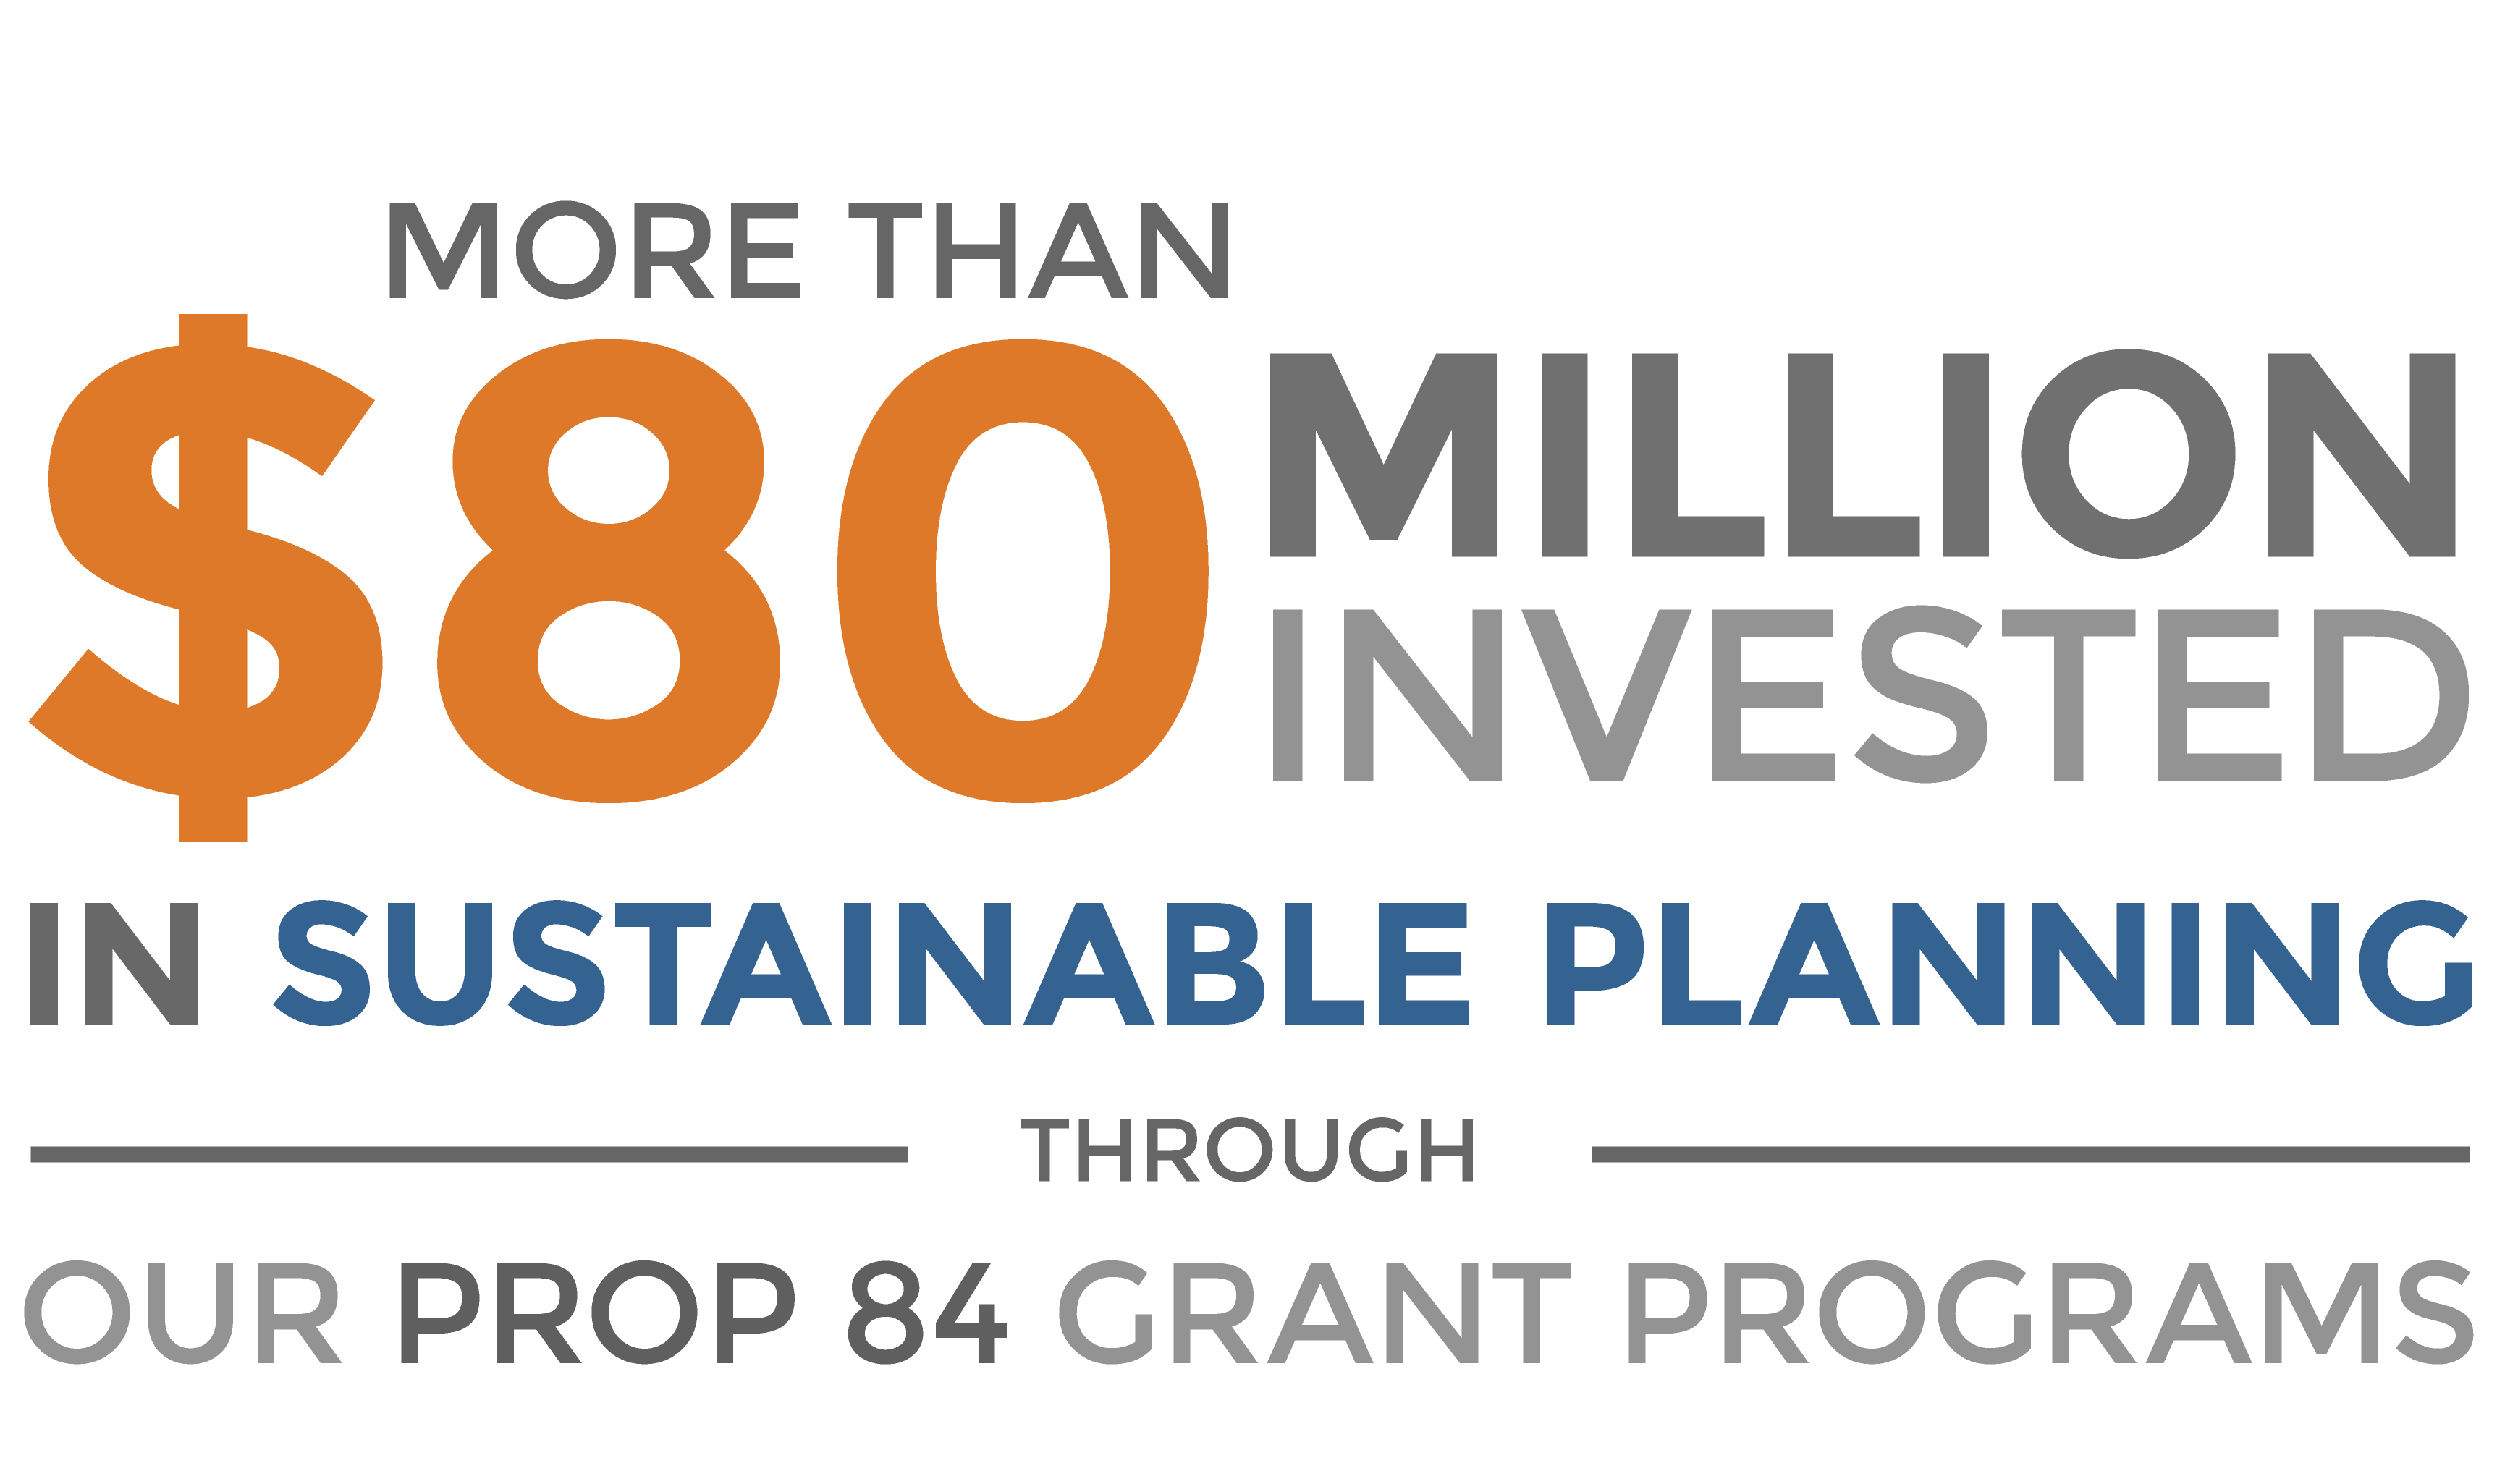 More than $80 million invested in sustainable planning through our Prop 84 grant programs.